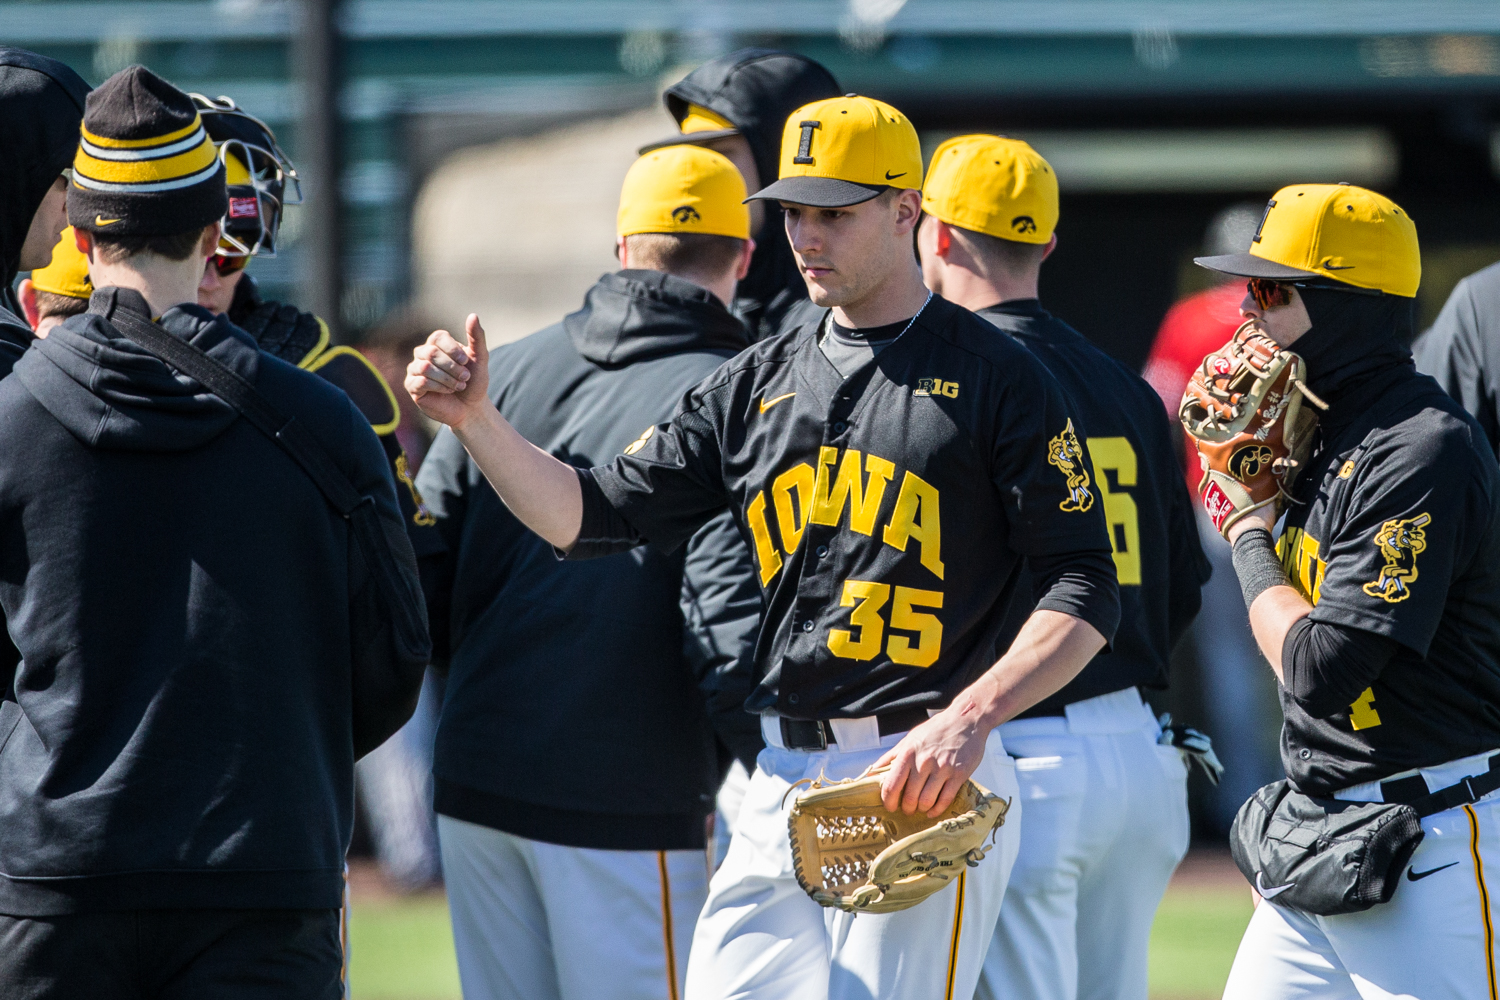 Iowa+pitcher+Cam+Baumann+walks+to+the+dugout+for+a+changeover+during+the+first+game+of+a+baseball+doubleheader+between+Iowa+and+Cal-State+Northridge+at+Duane+Banks+Field+on+Sunday%2C+March+17%2C+2019.+The+Hawkeyes+defeated+the+Matadors%2C+5-4.